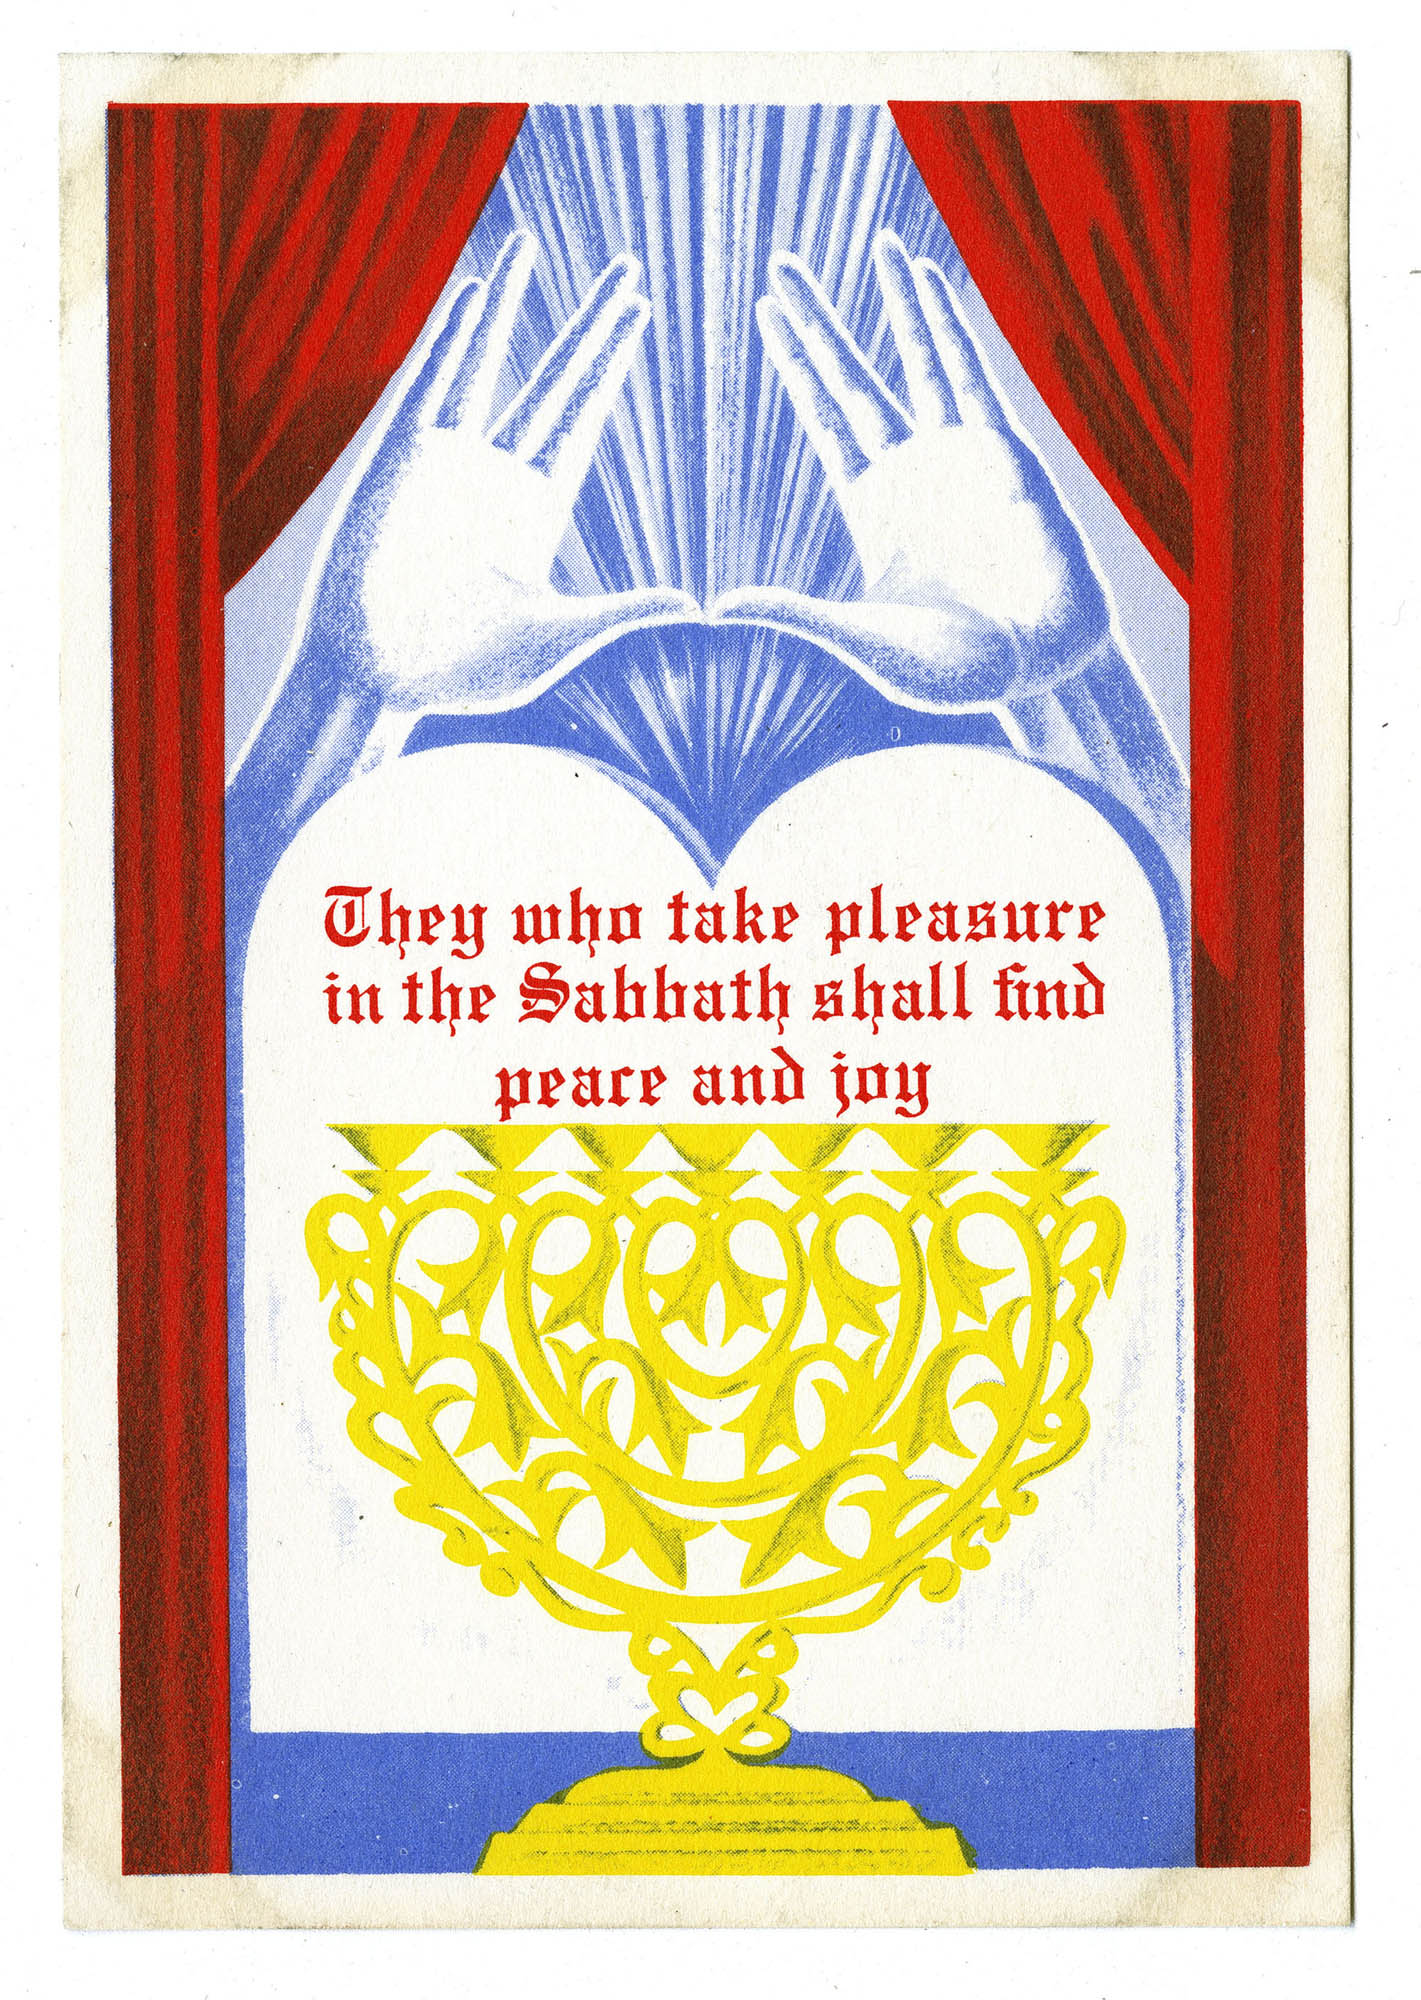 [They who take pleasure in the Sabbath shall find peace and joy]